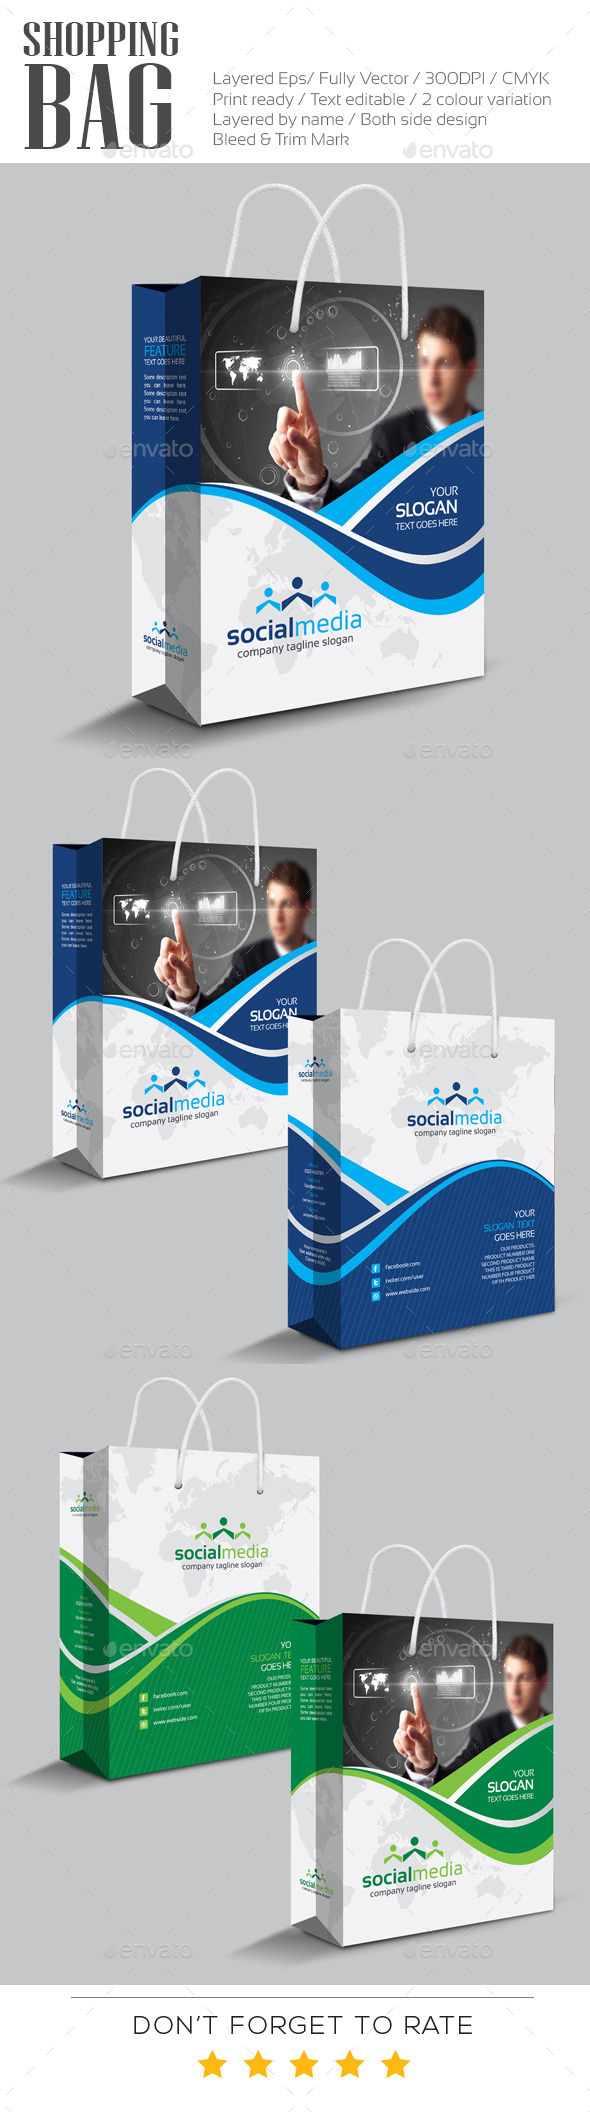 GraphicRiver Social Media Shopping Bag 10983229